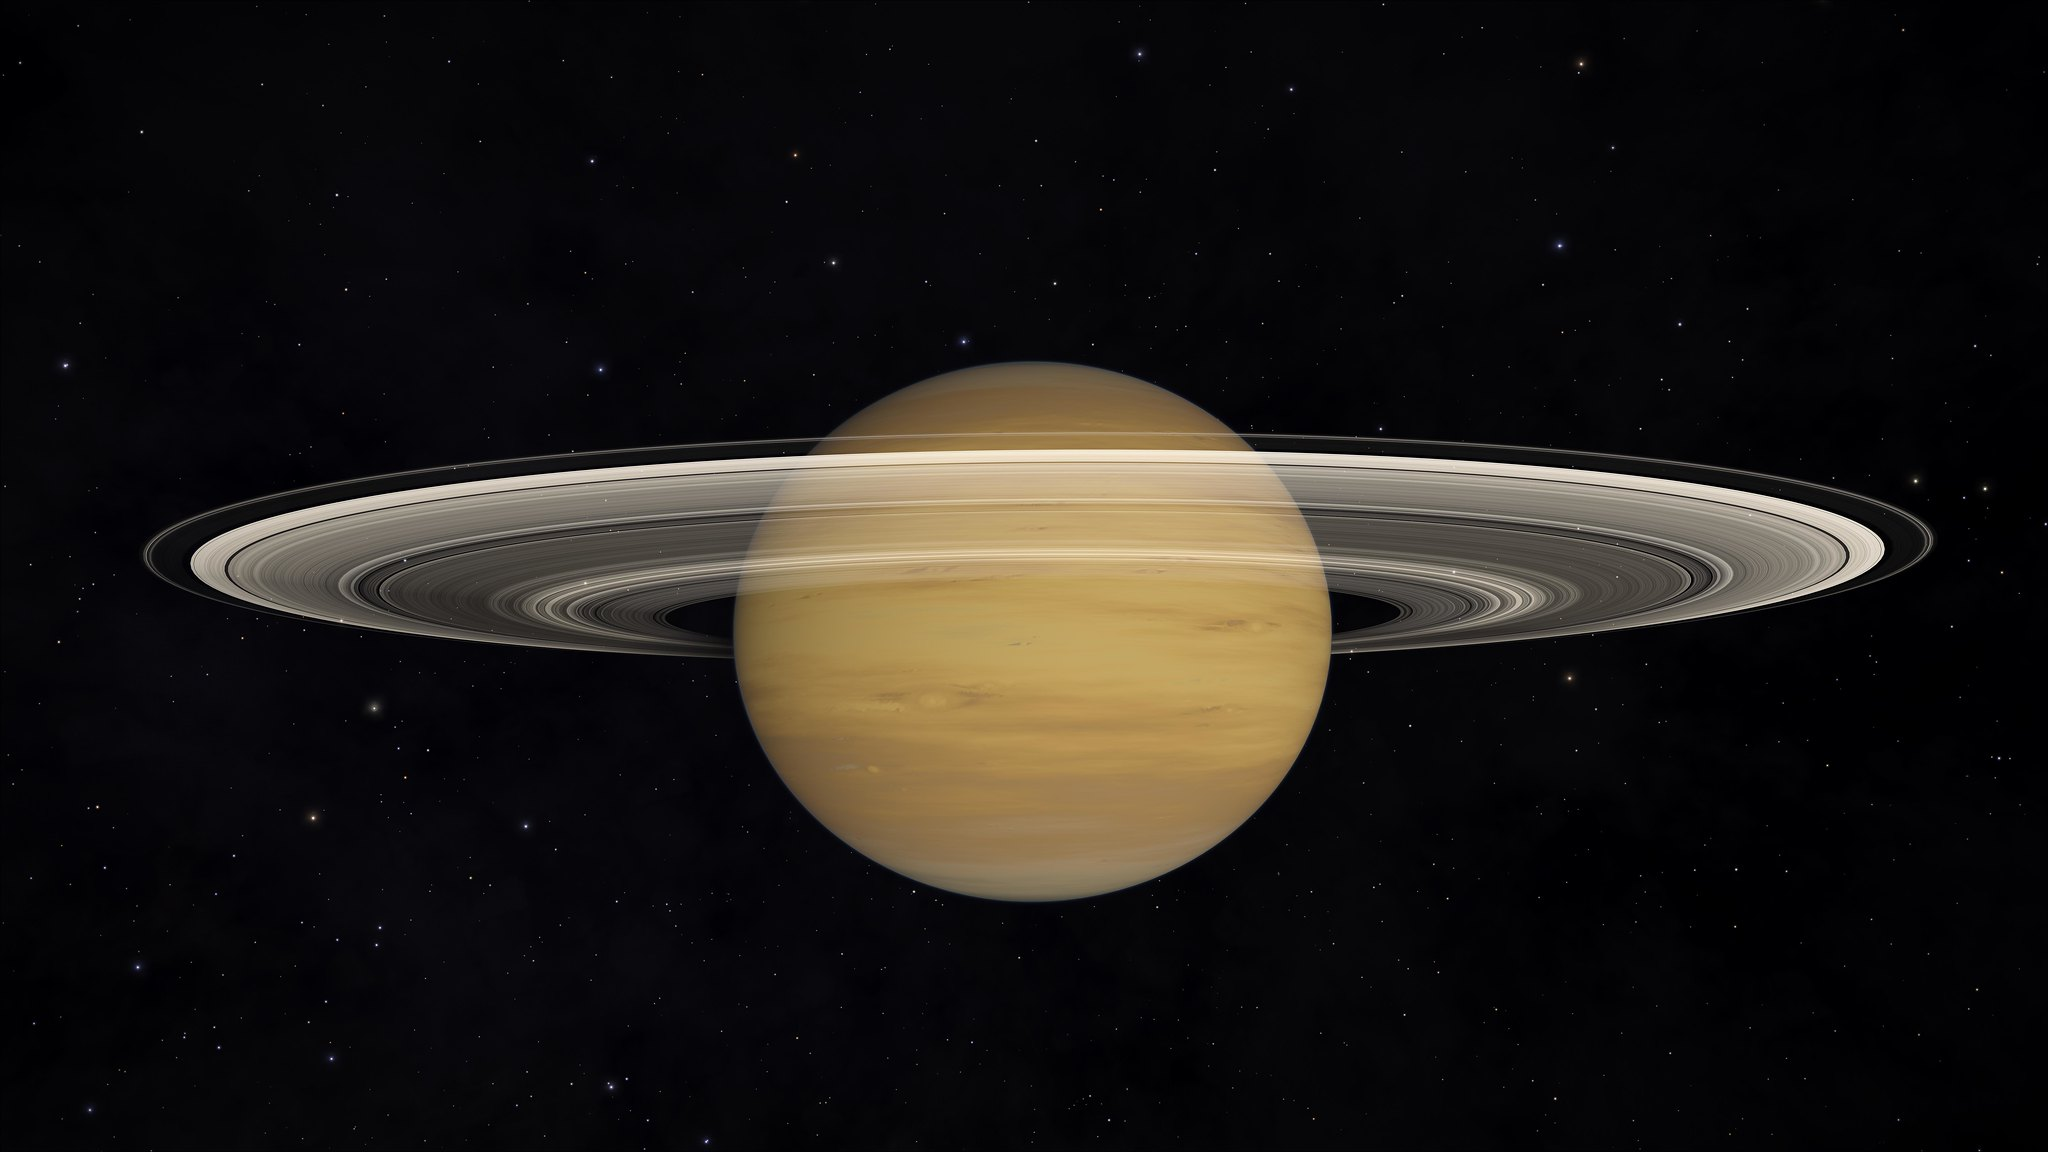 saturn class planets - photo #23